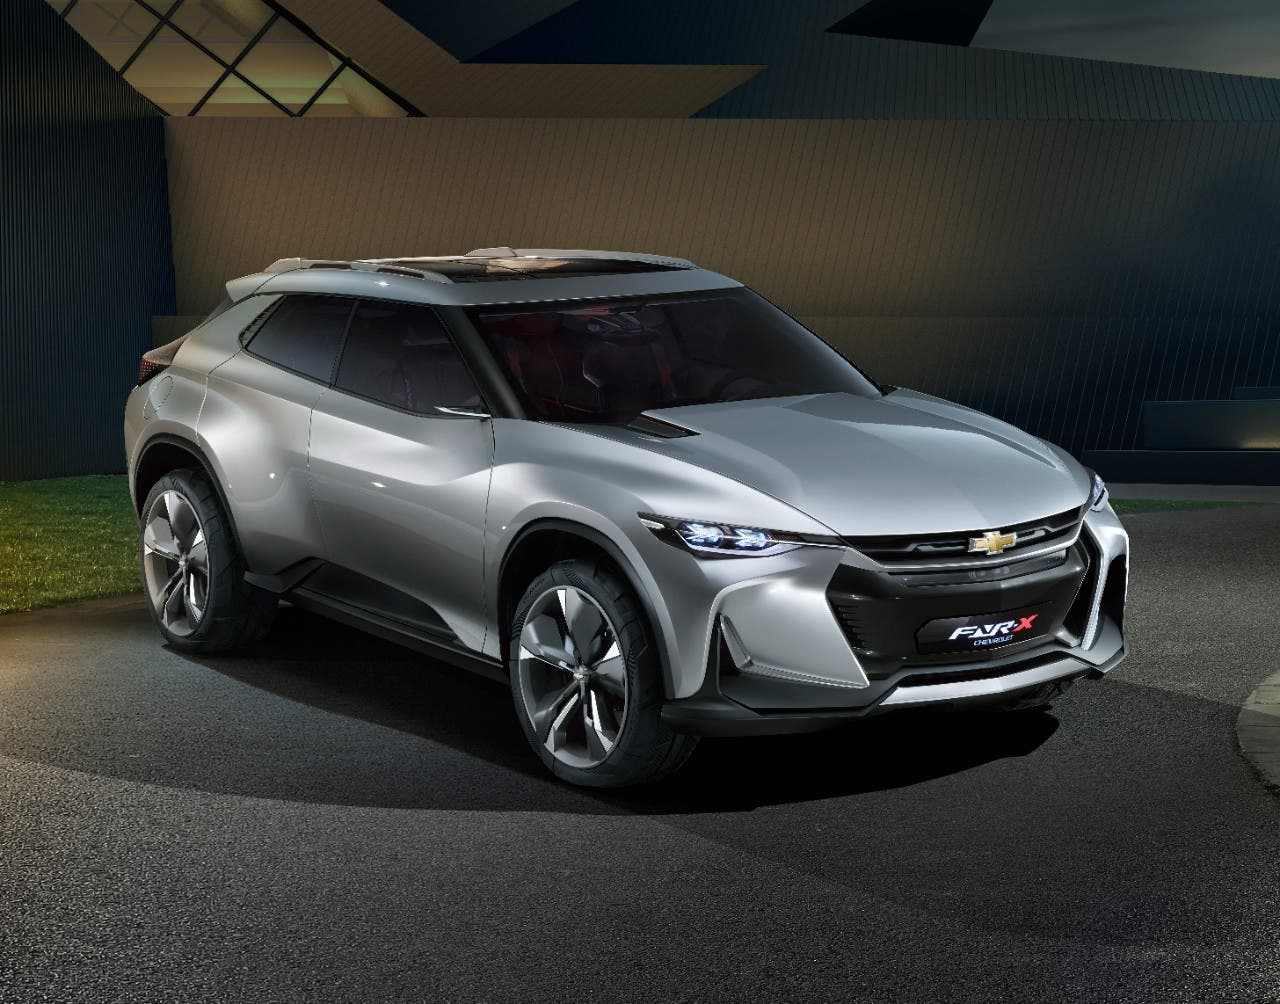 Chevrolet Doesn T Refer To The Fnr X As An Suv Instead It Describes All Purpose Sports Concept Vehicle Make Off Road Capable